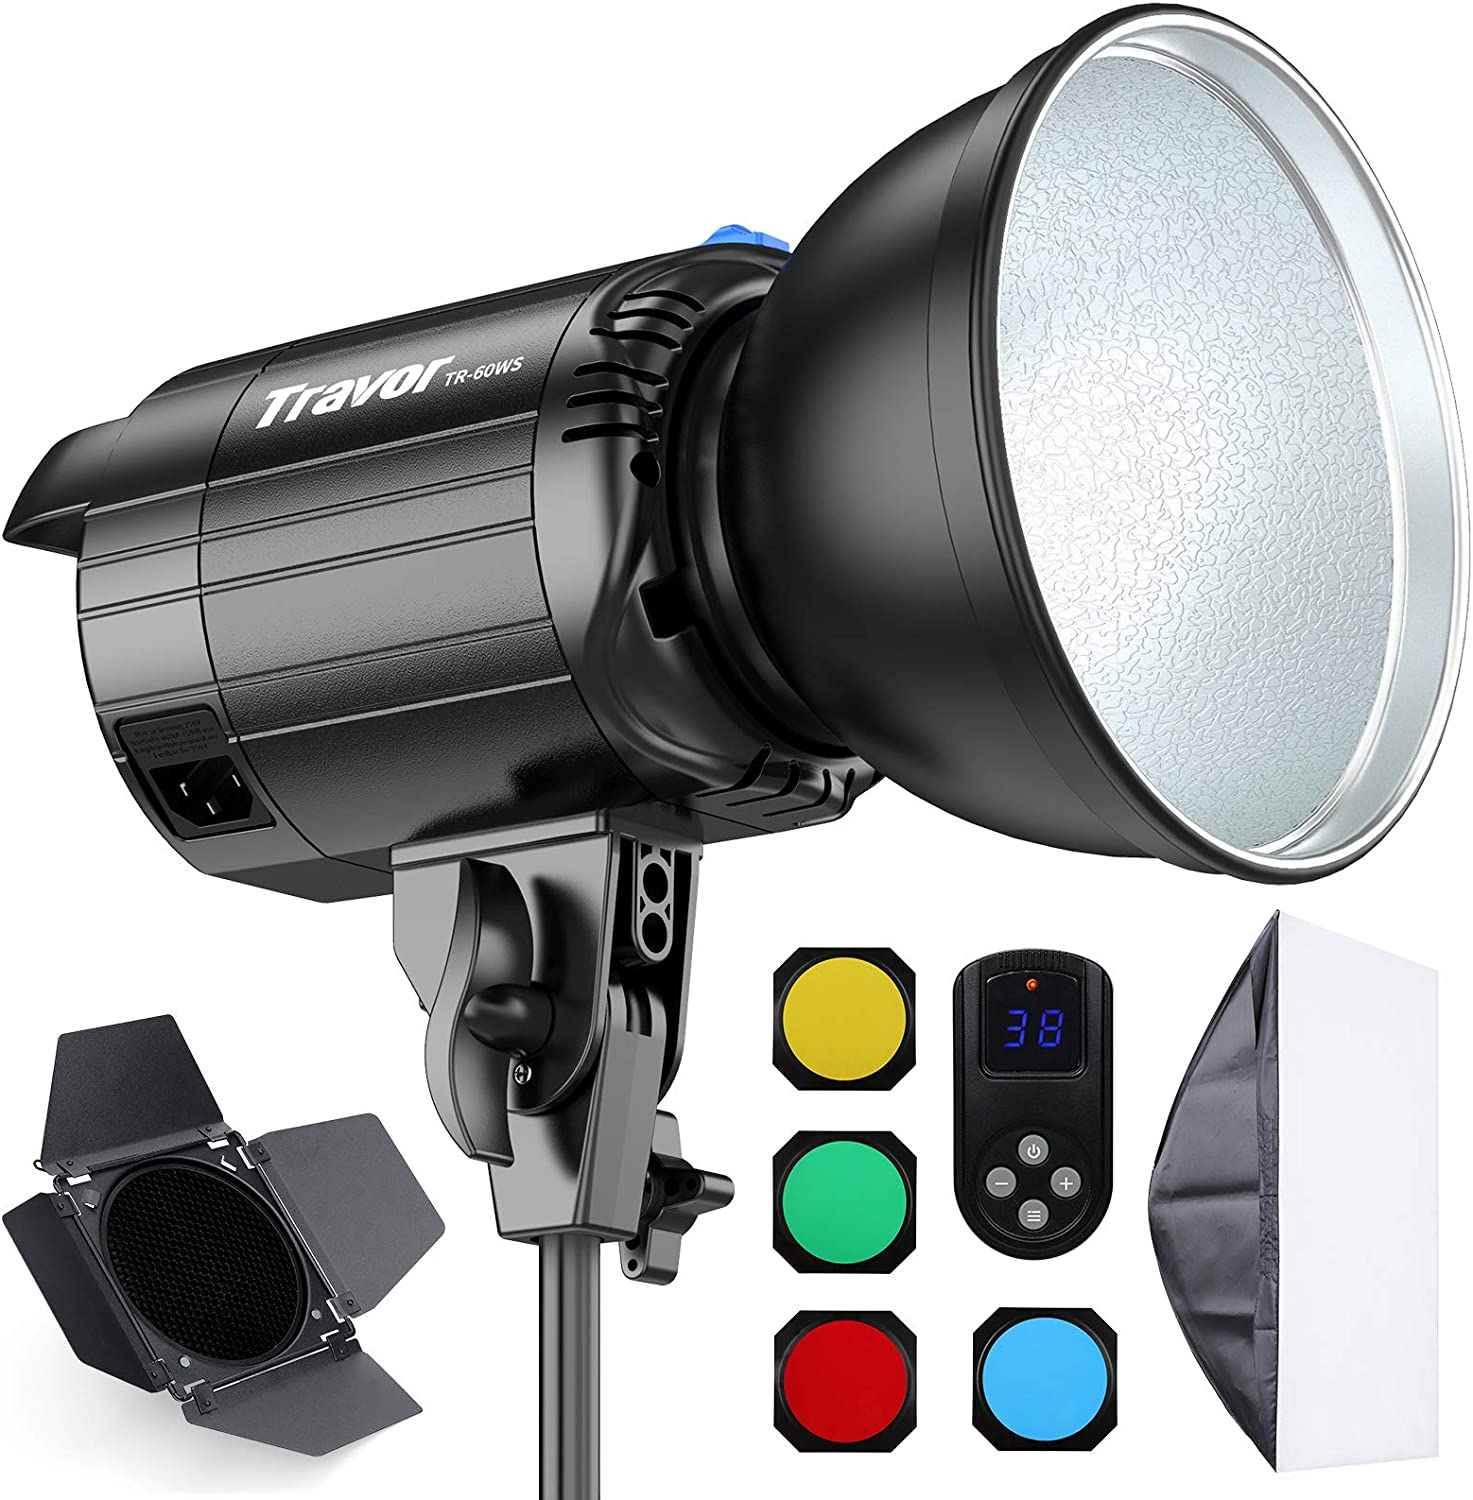 LED Video Light Travor Max 52% OFF 60W Dimmable COB Continuous Latest item Bowens